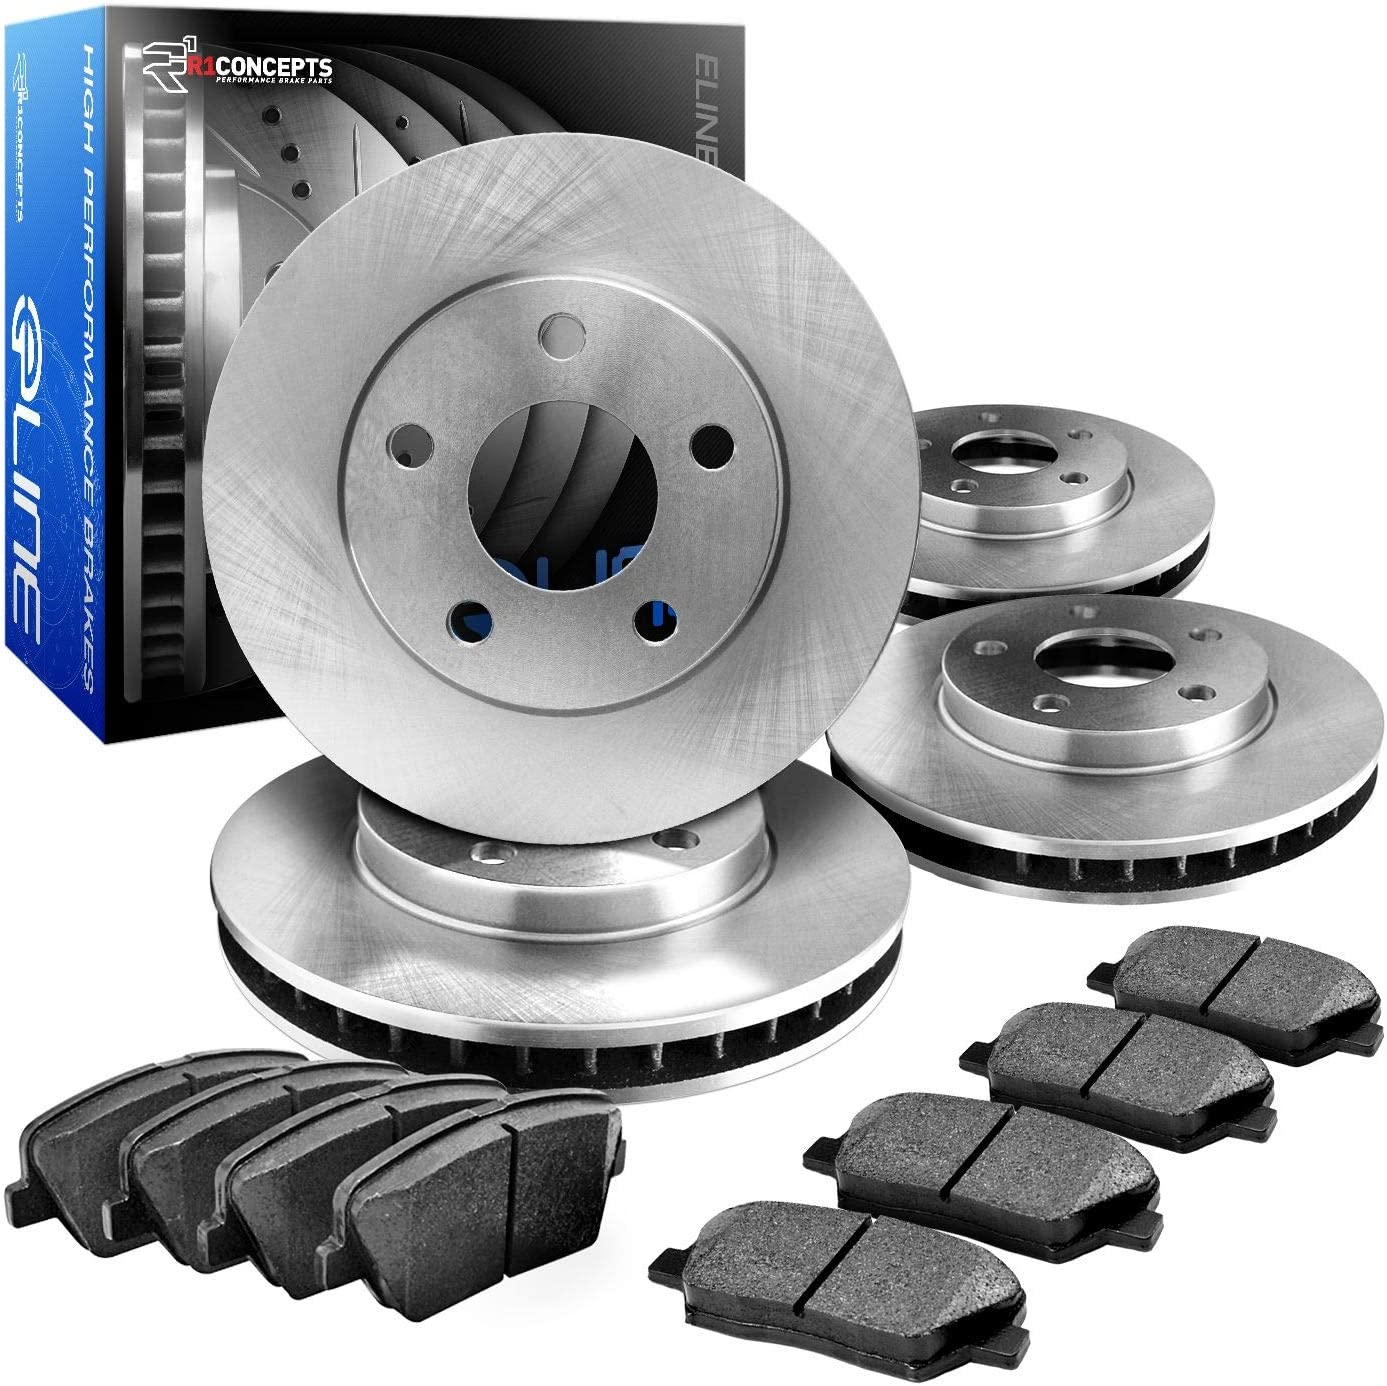 R1 Concepts CEOE10991 Eline Series Replacement Rotors And Ceramic Pads Kit Front and Rear